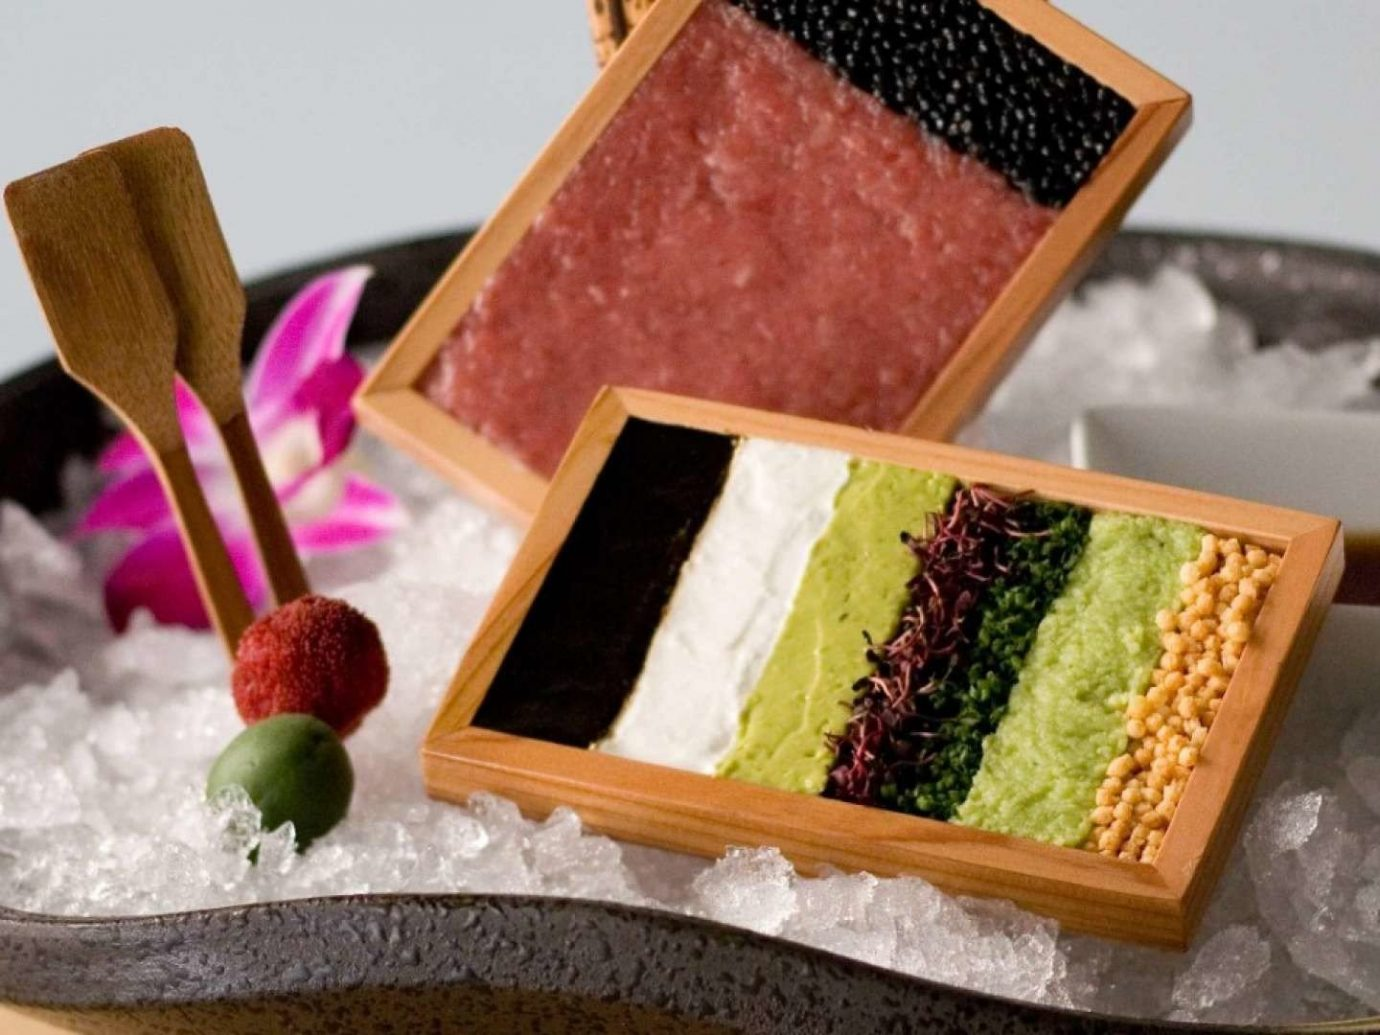 Food + Drink cake dish food chocolate meal cuisine asian food lunch japanese cuisine dessert